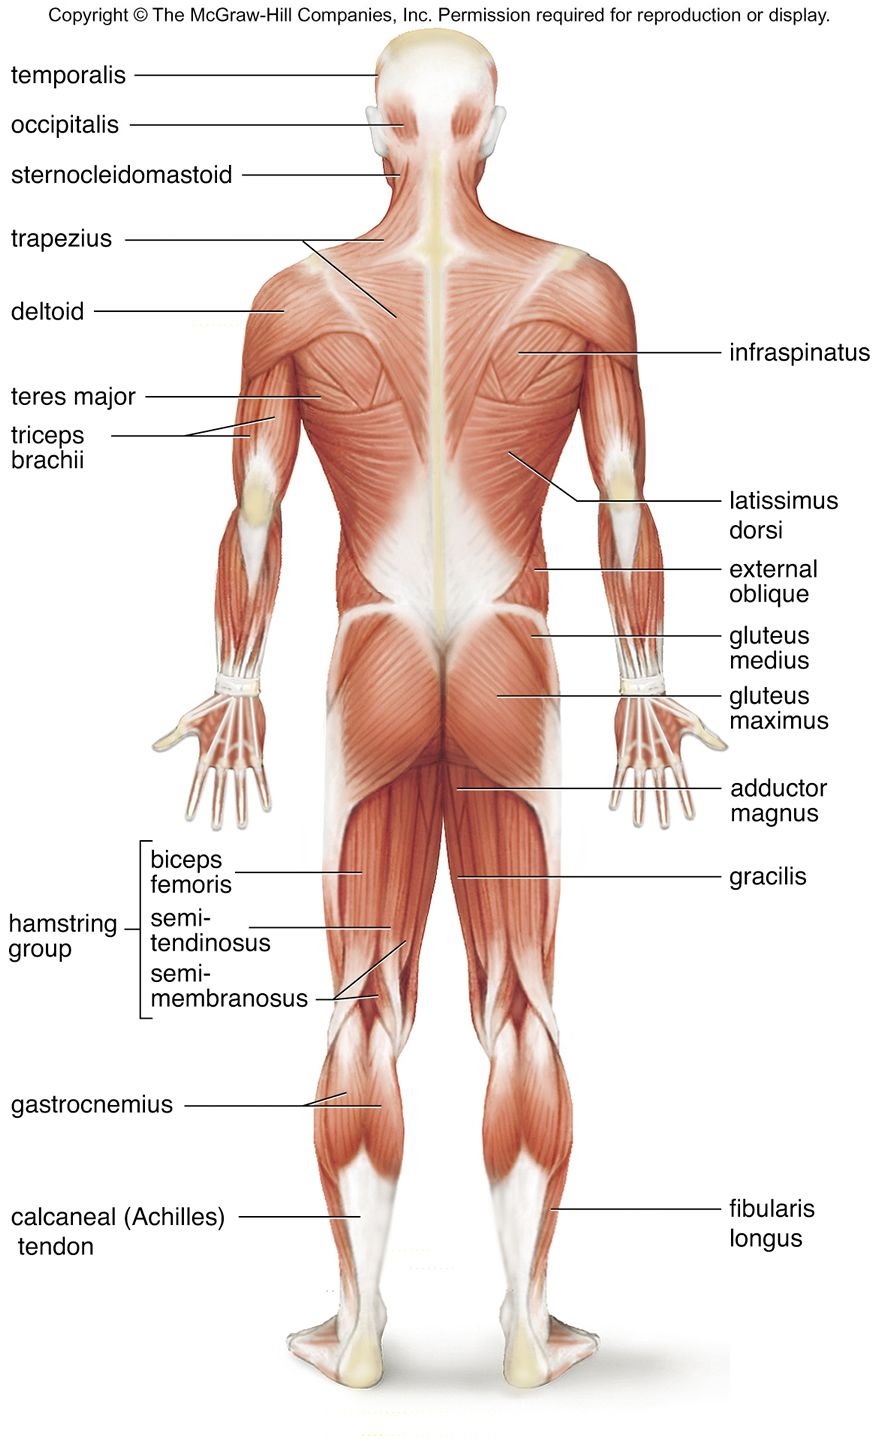 skeletal and muscular system diagram 2001 subaru forester wiring superficial muscles posterior view